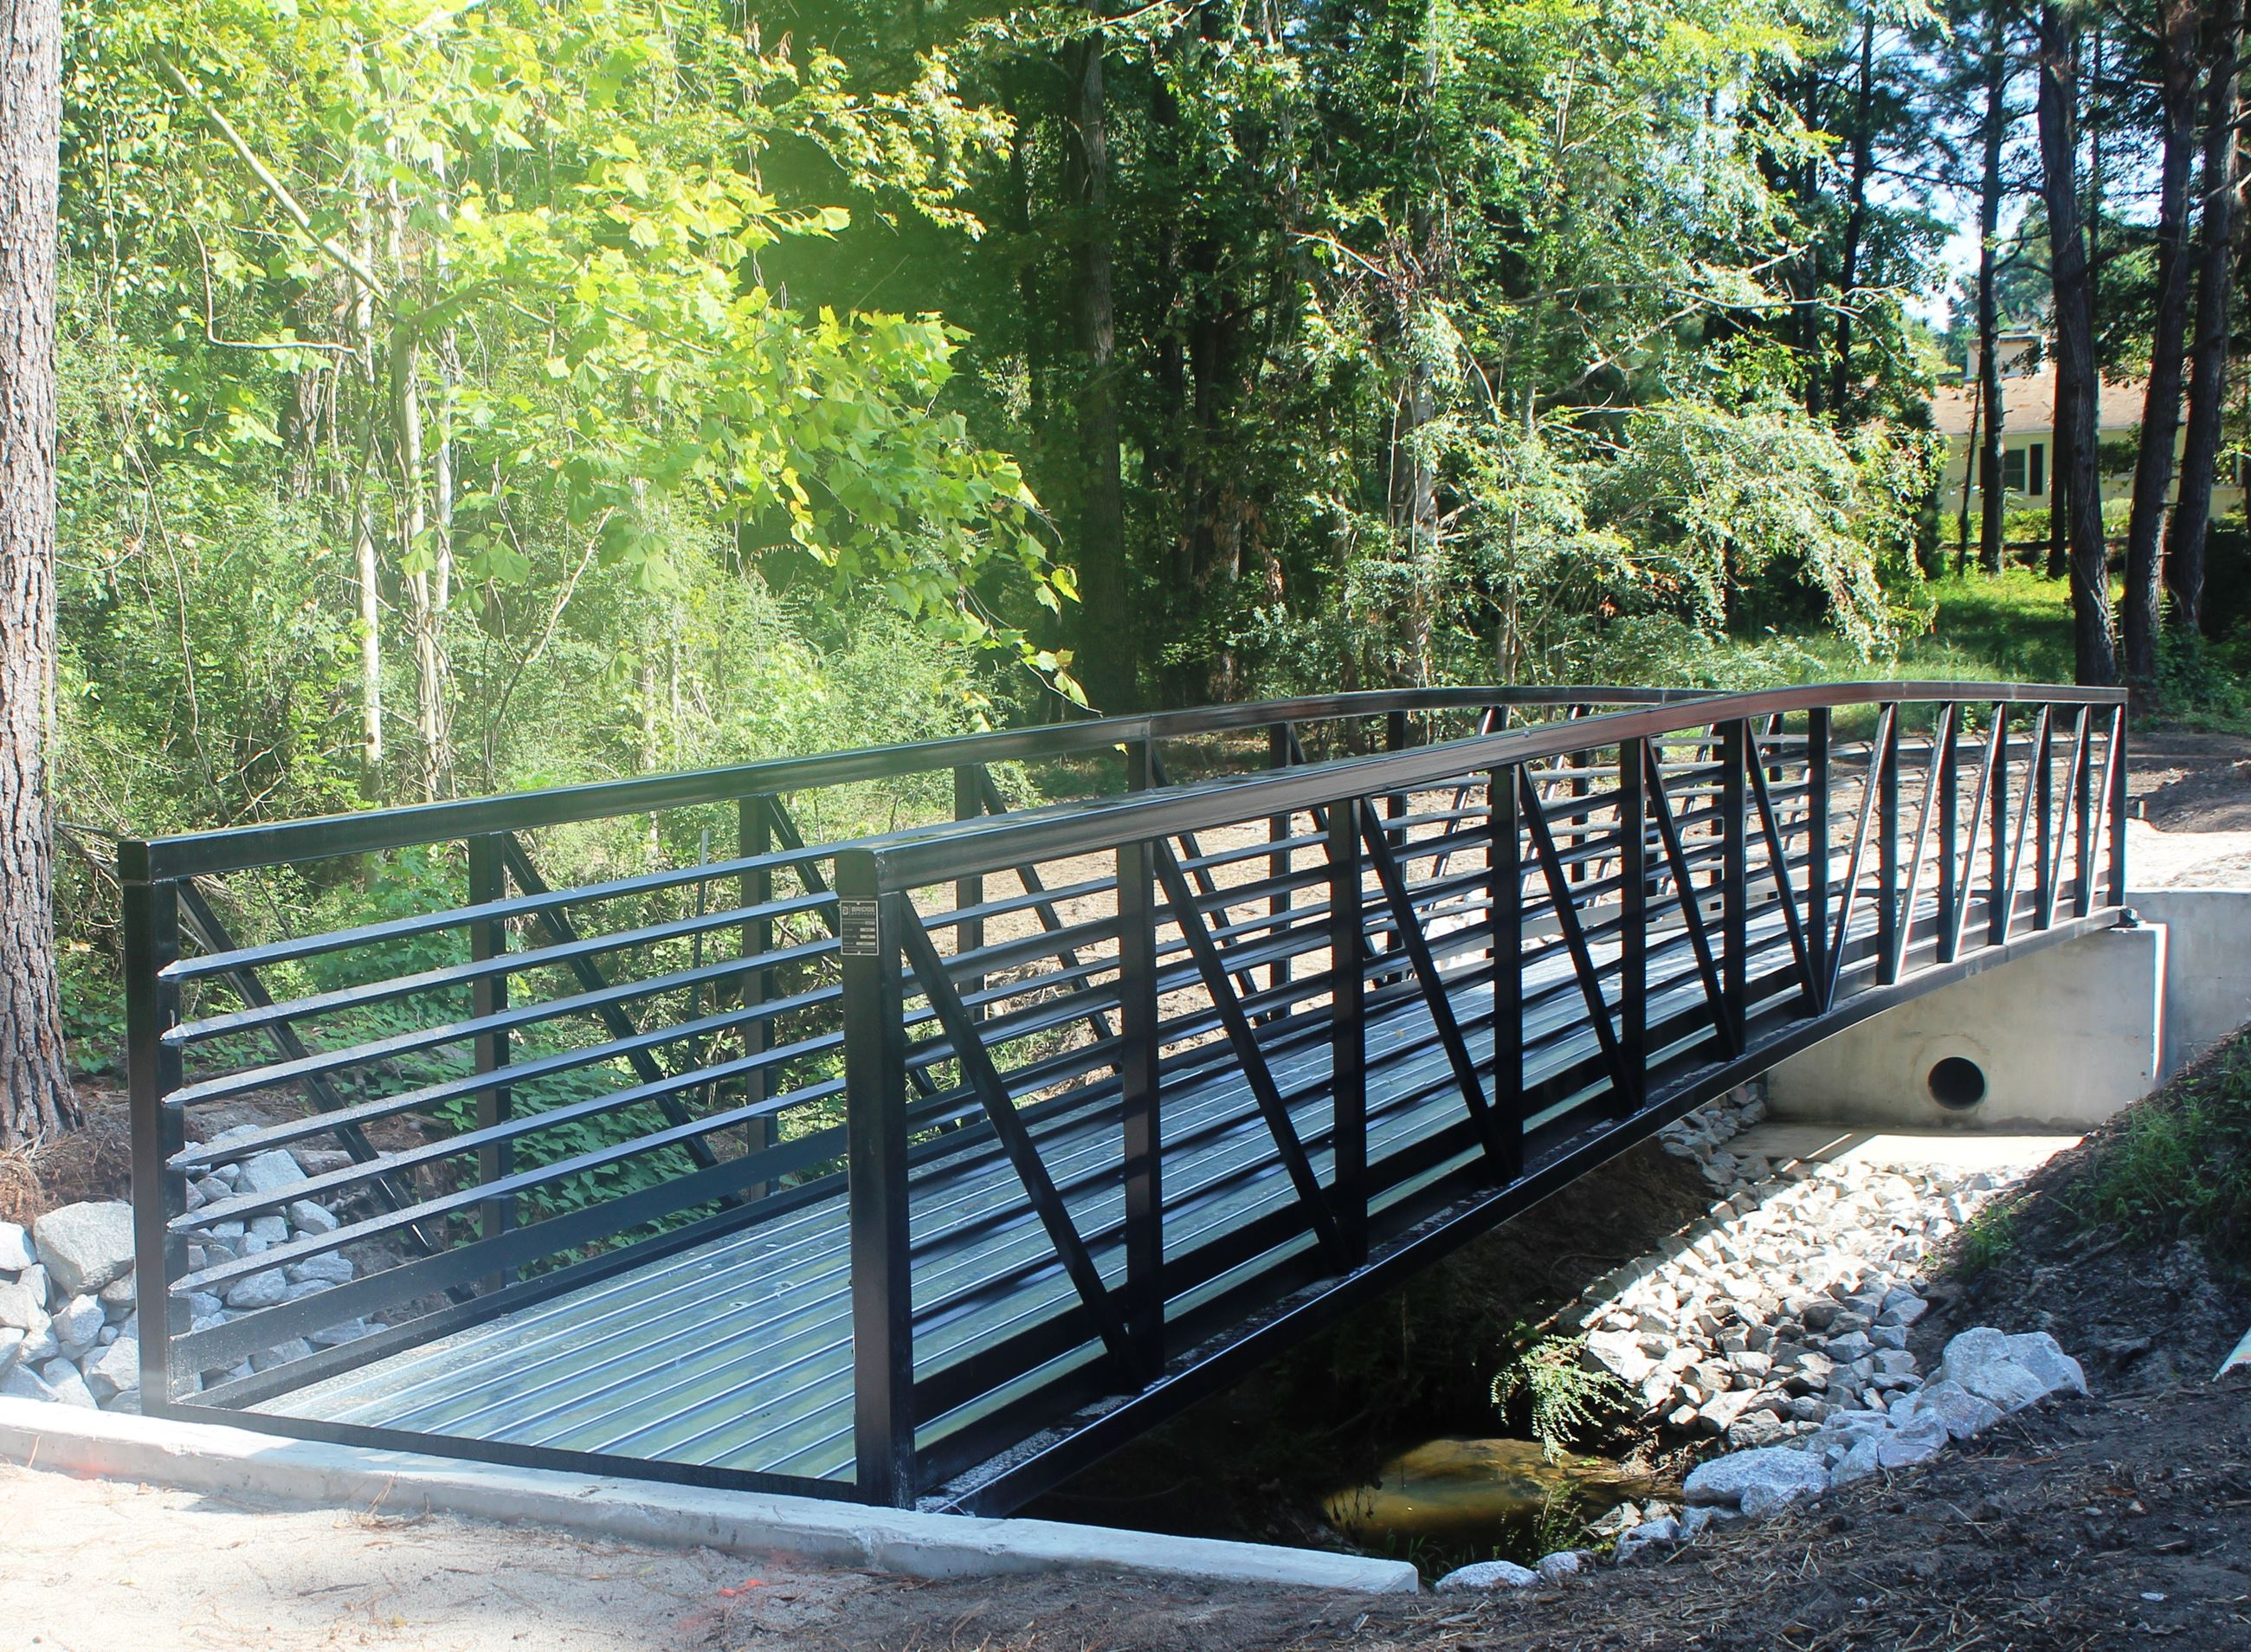 Pedestrian bridge over creek